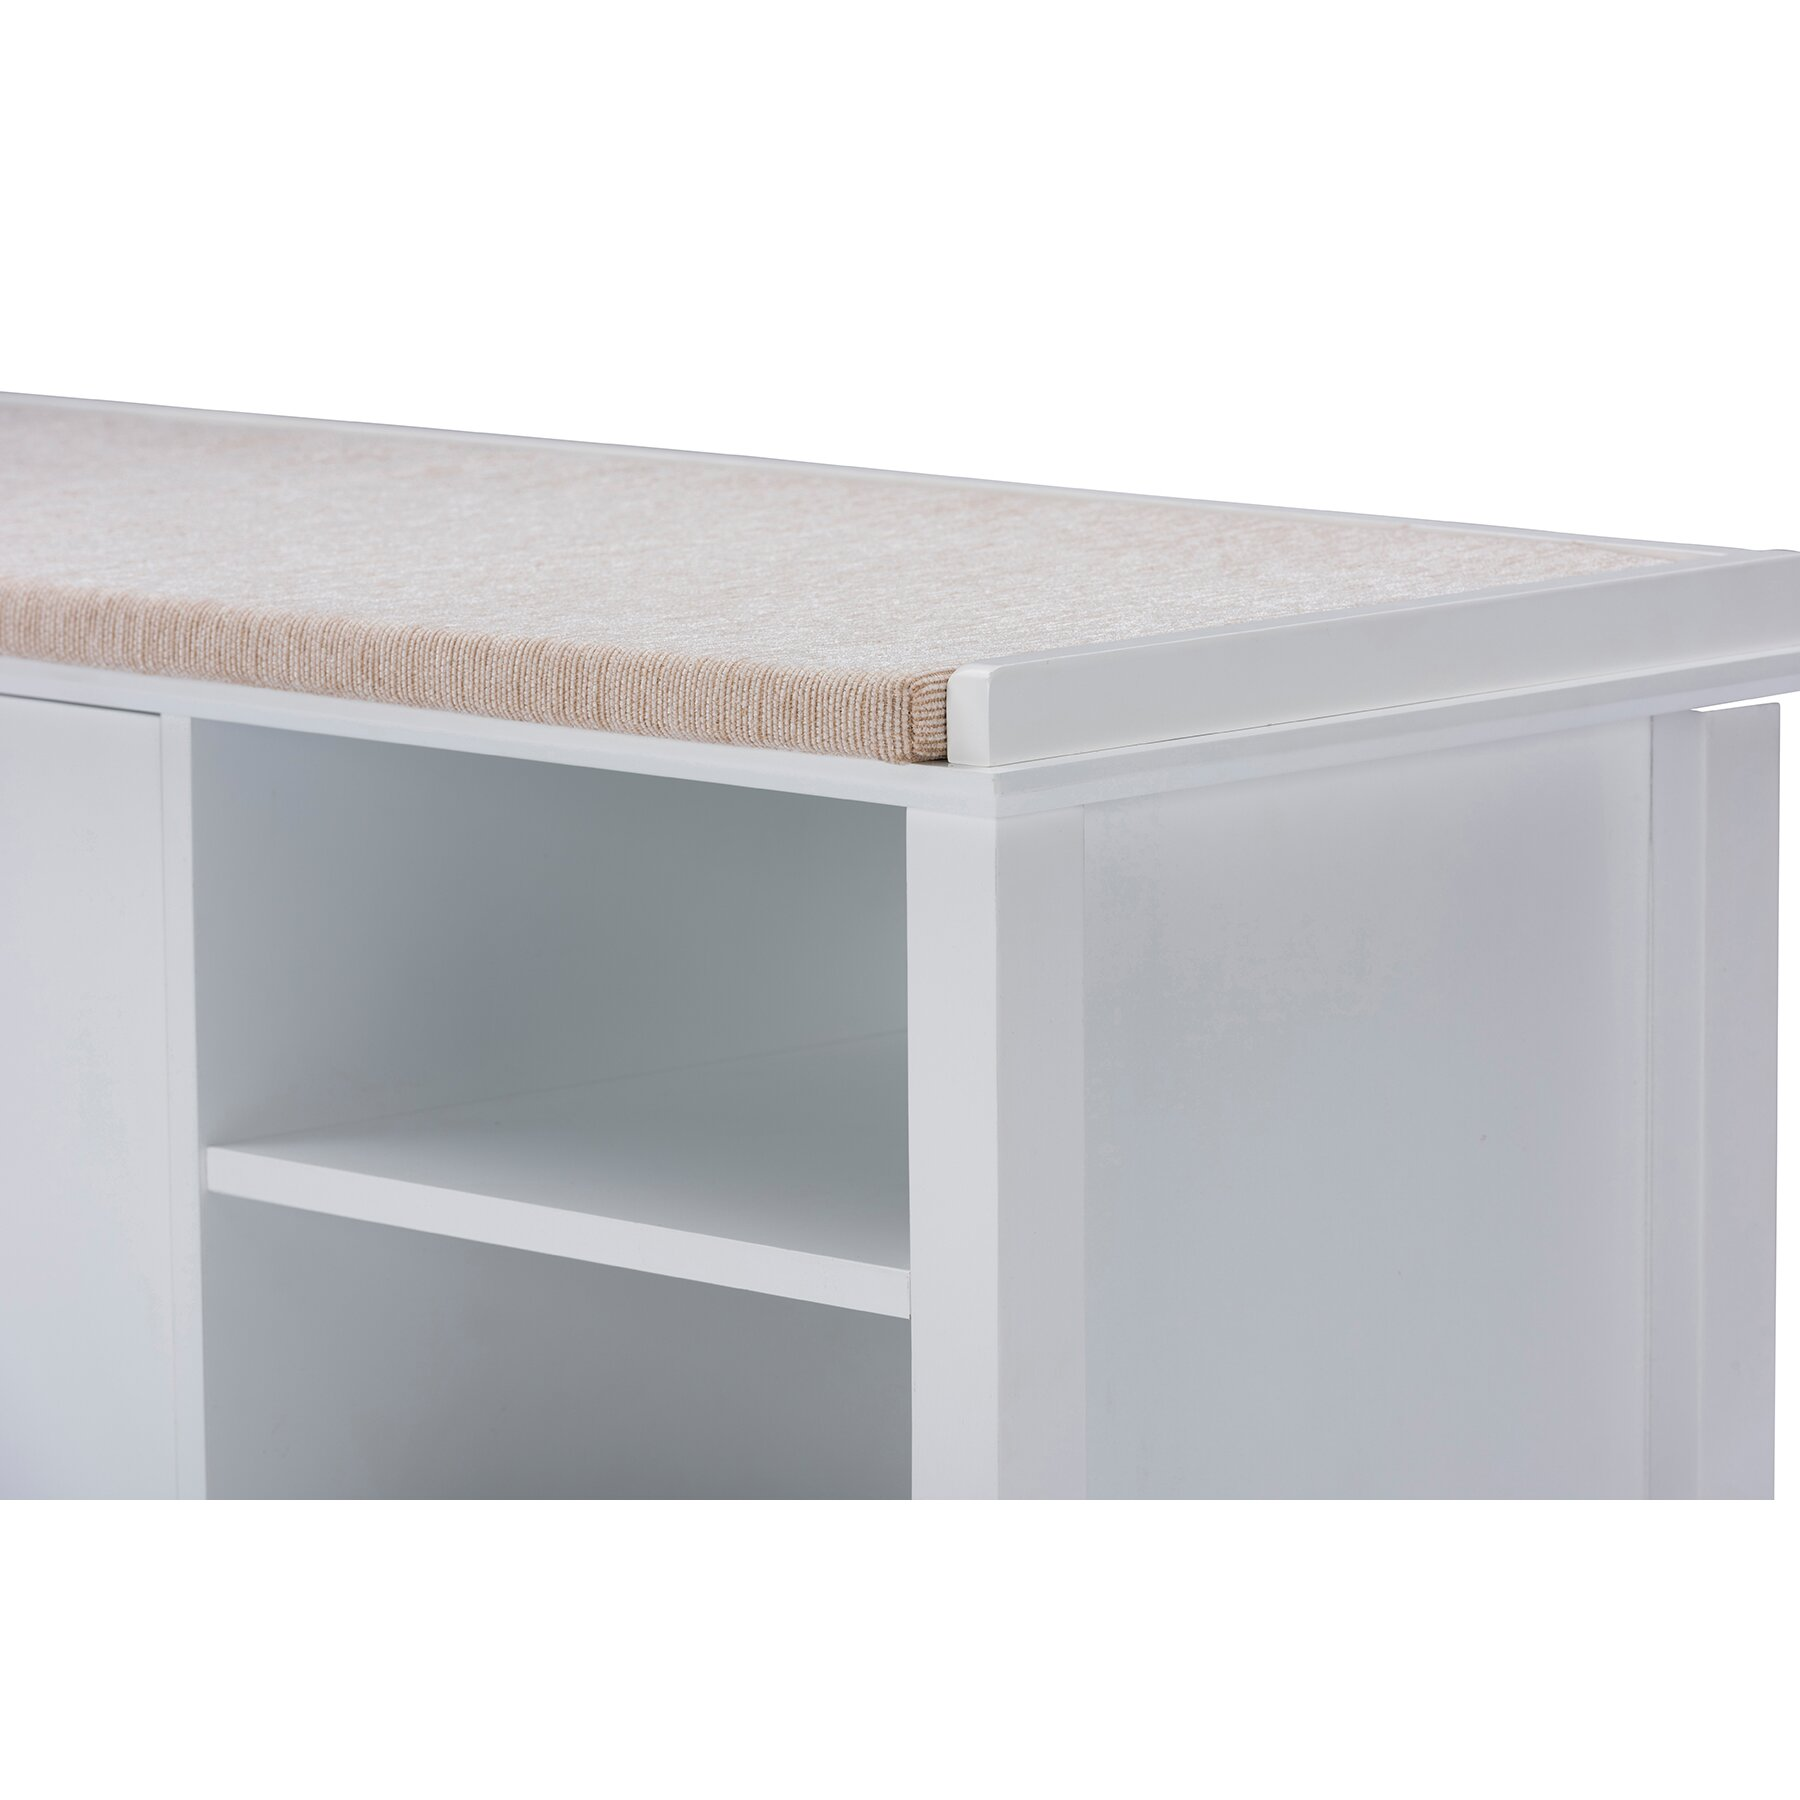 Wholesale Interiors Baxton Studio Swiss Modern And Contemporary White Wooden Shoe Storage